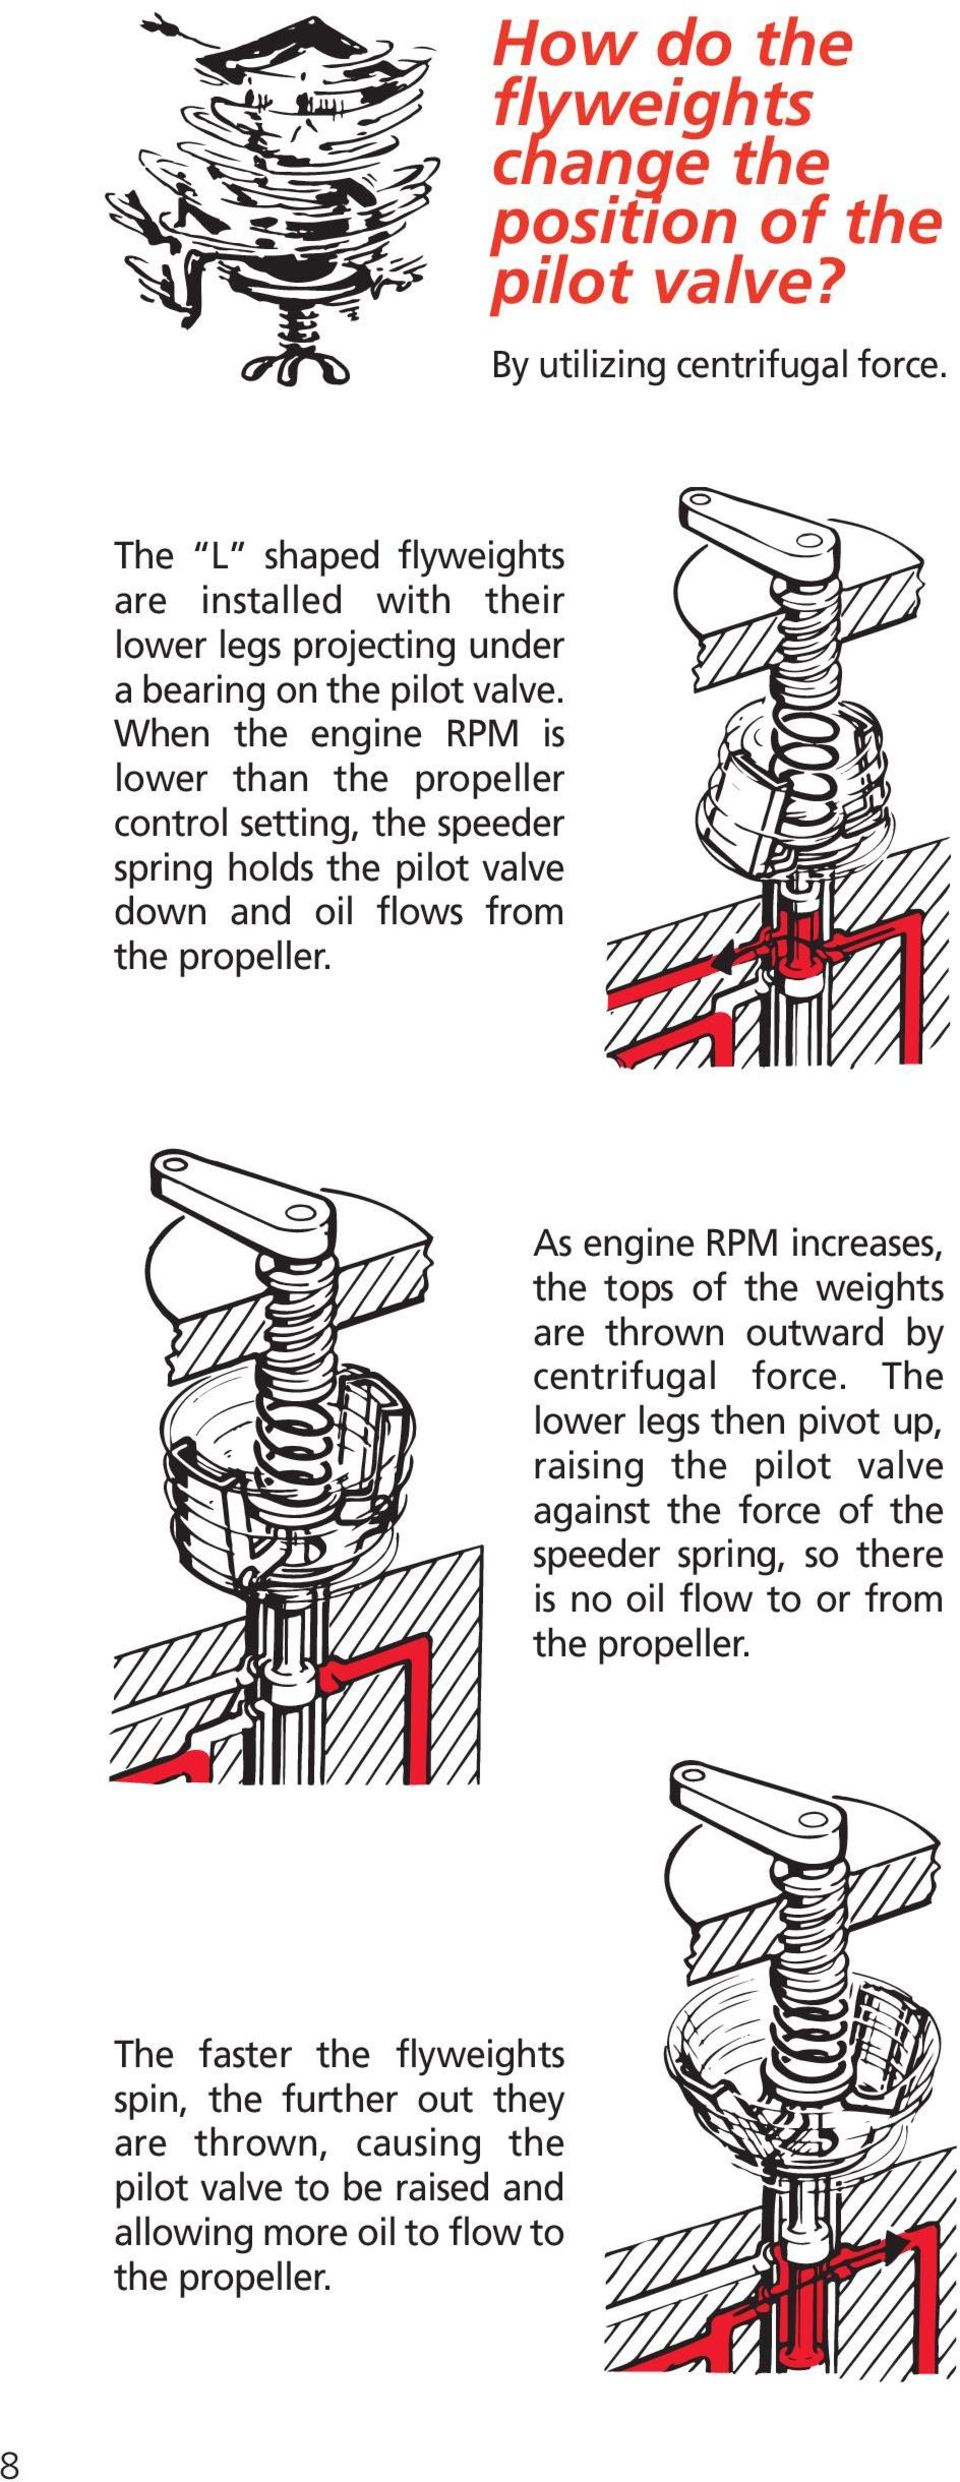 When the engine RPM is lower than the propeller control setting, the  speeder spring holds